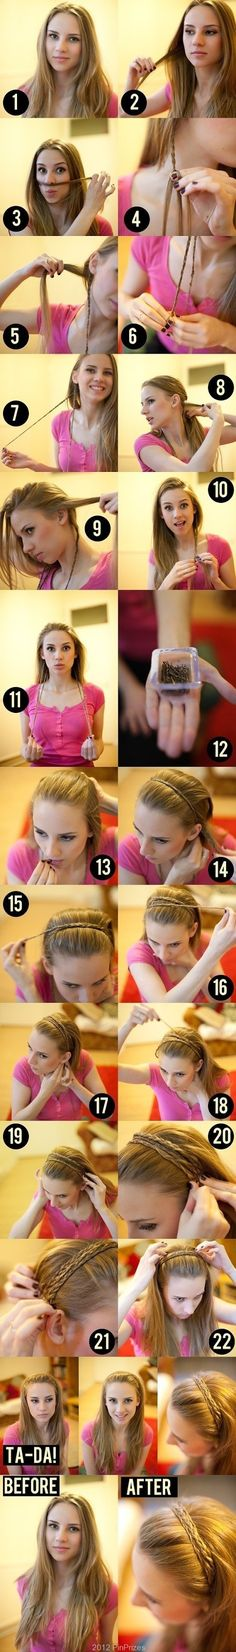 19 super cute and fast hair styles, great for office and play! ★Tip: To skip curling for time, sleep with wet hair in messy bun ontop of your head. Gives awesome waves.